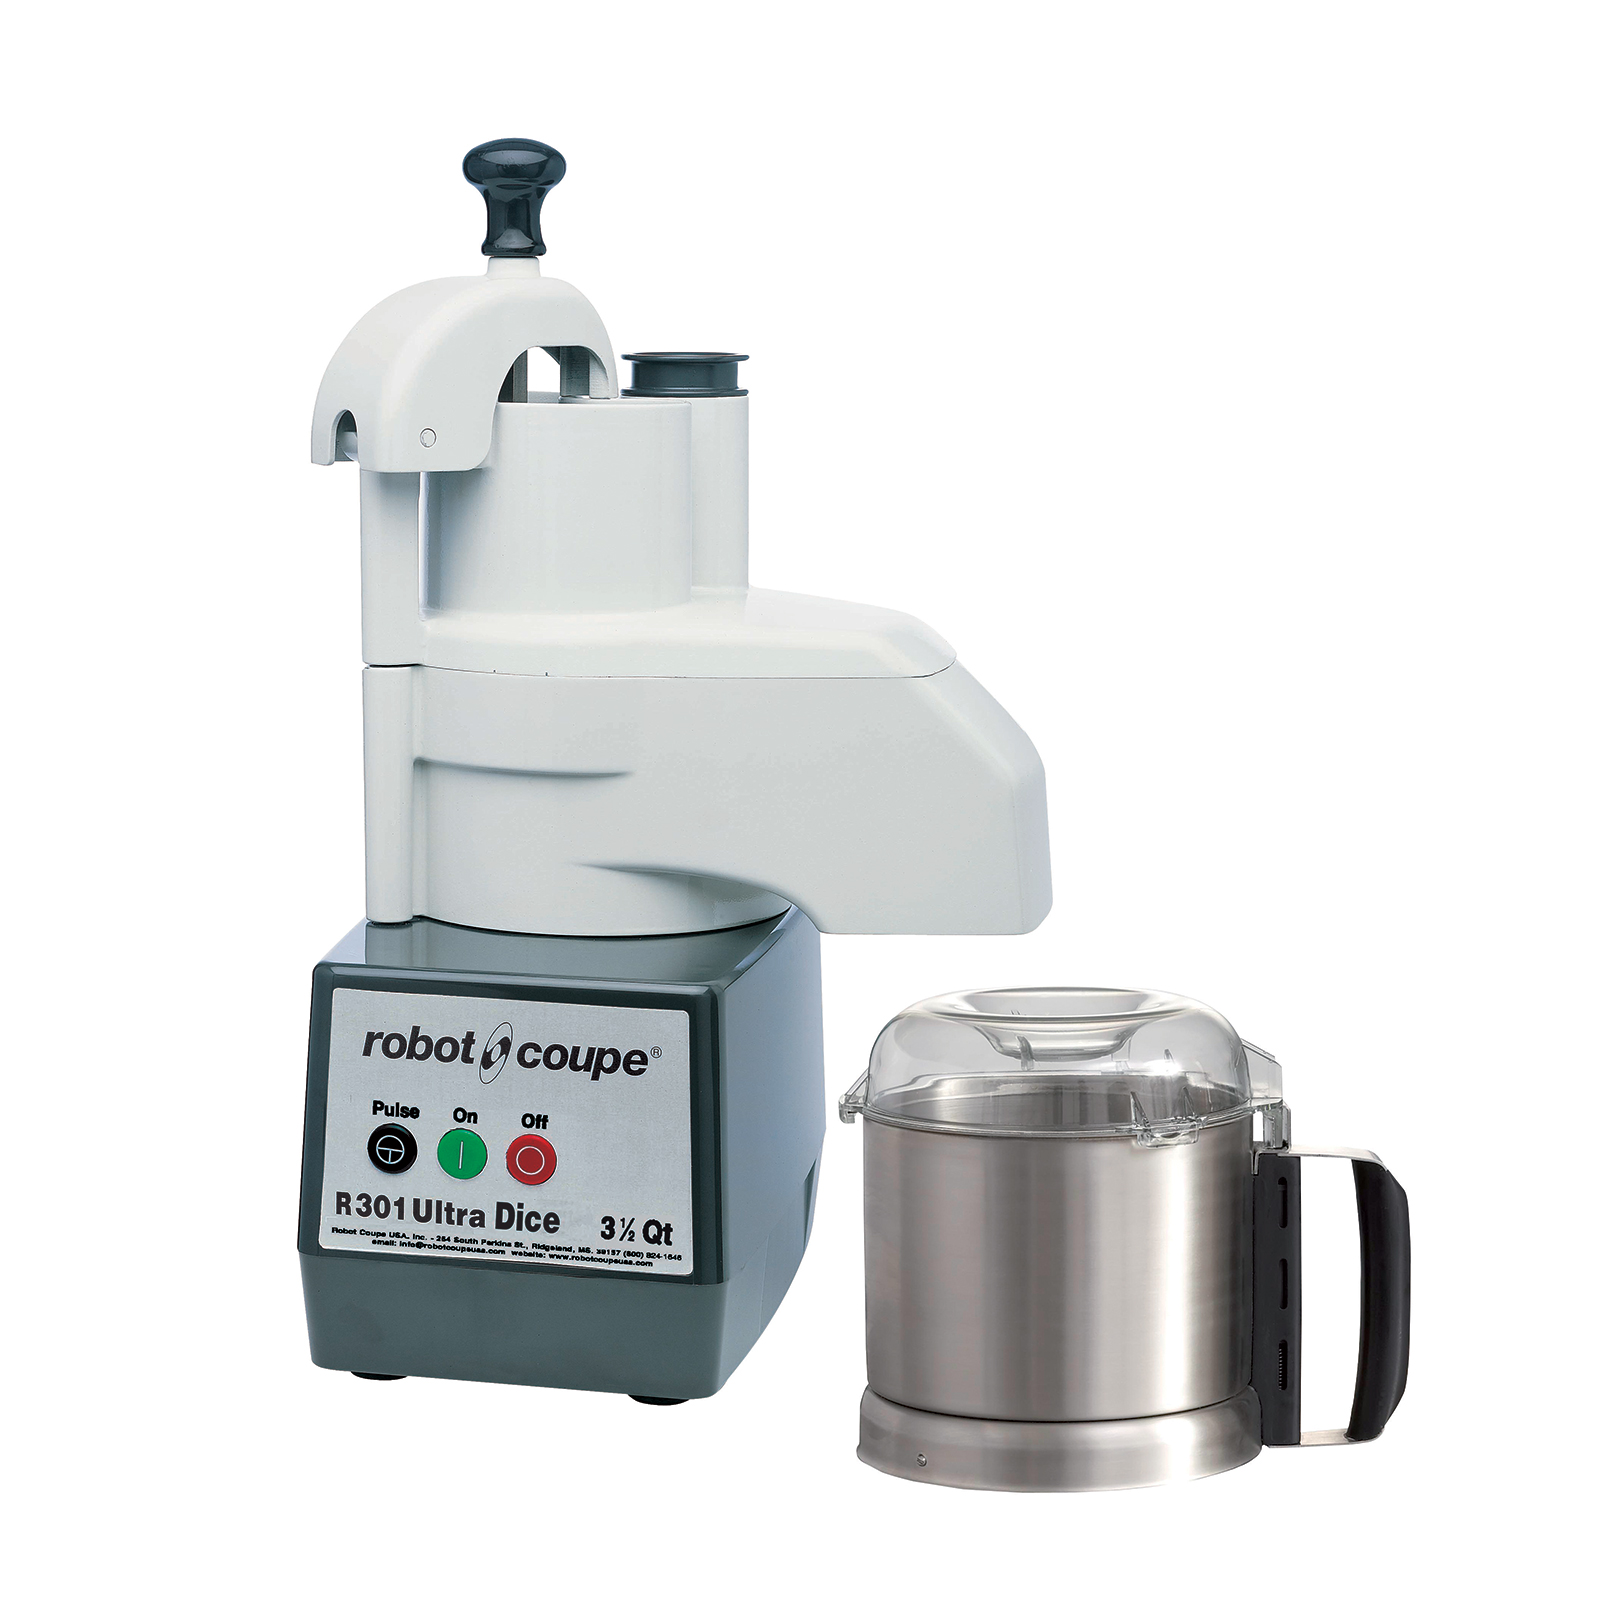 Robot Coupe R301 DICE ULTRA food processor, benchtop / countertop